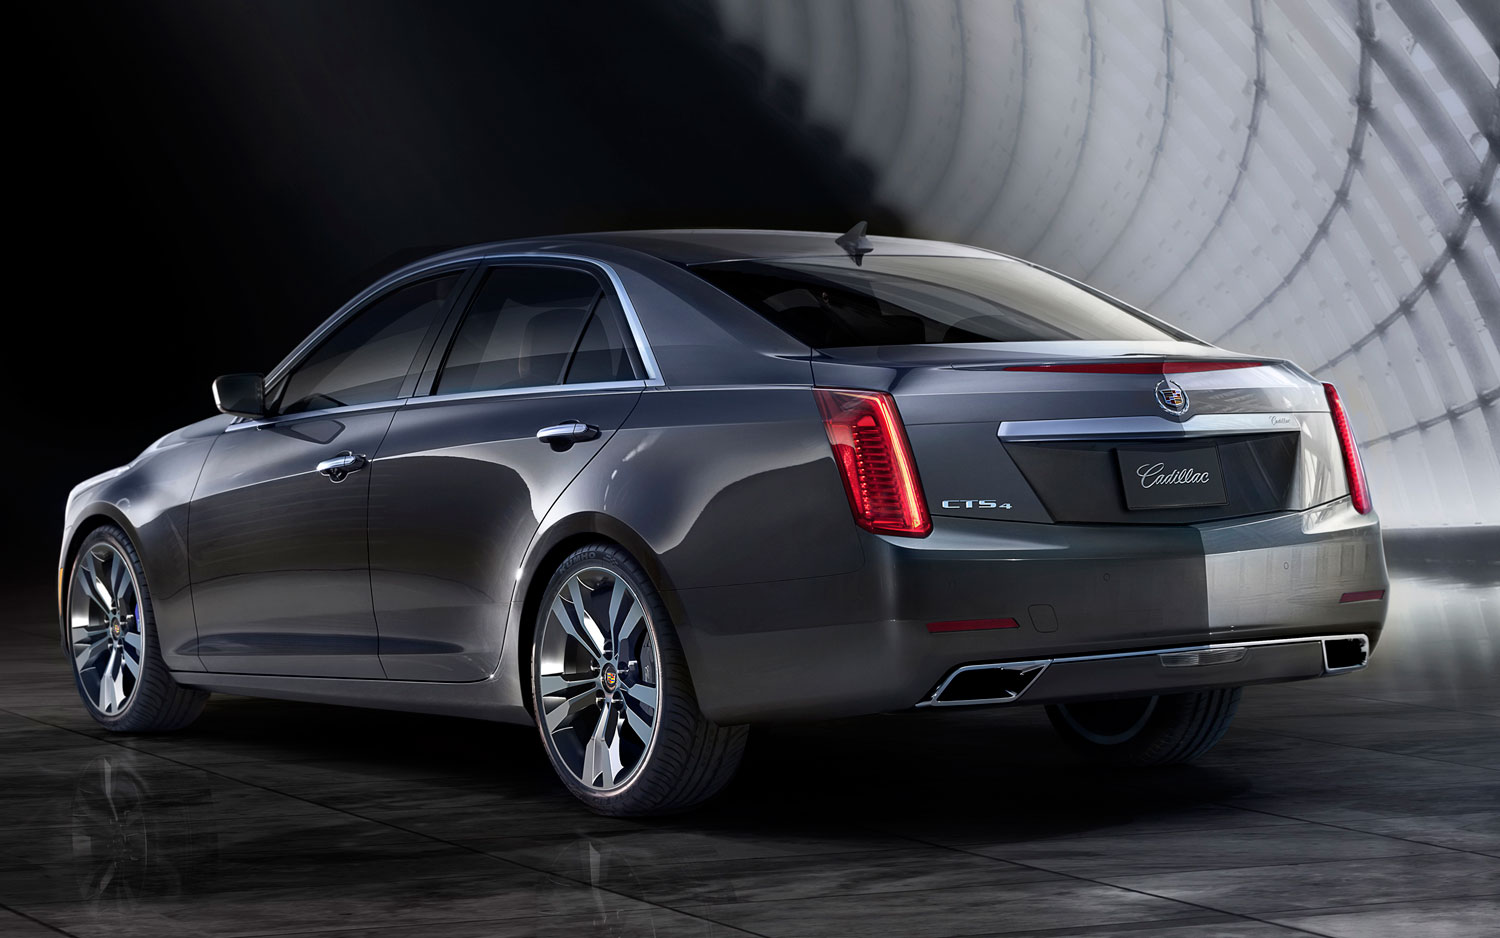 2014 Cadillac CTS Rear Left View1